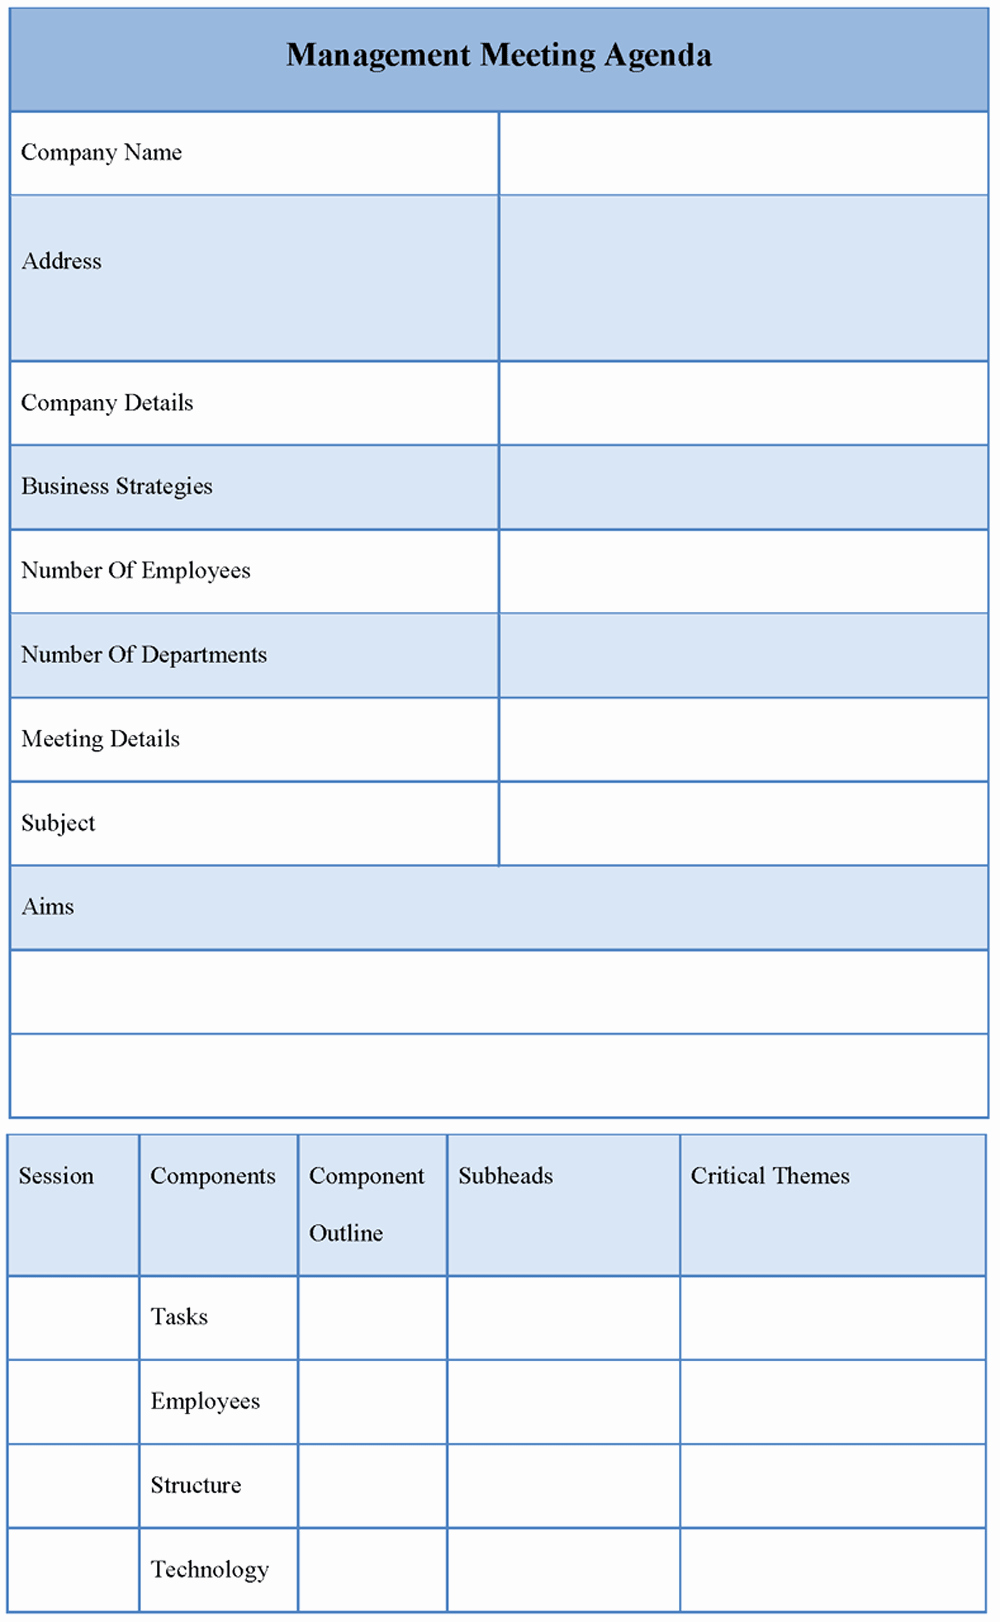 Agenda Template for Management Meeting Sample Of